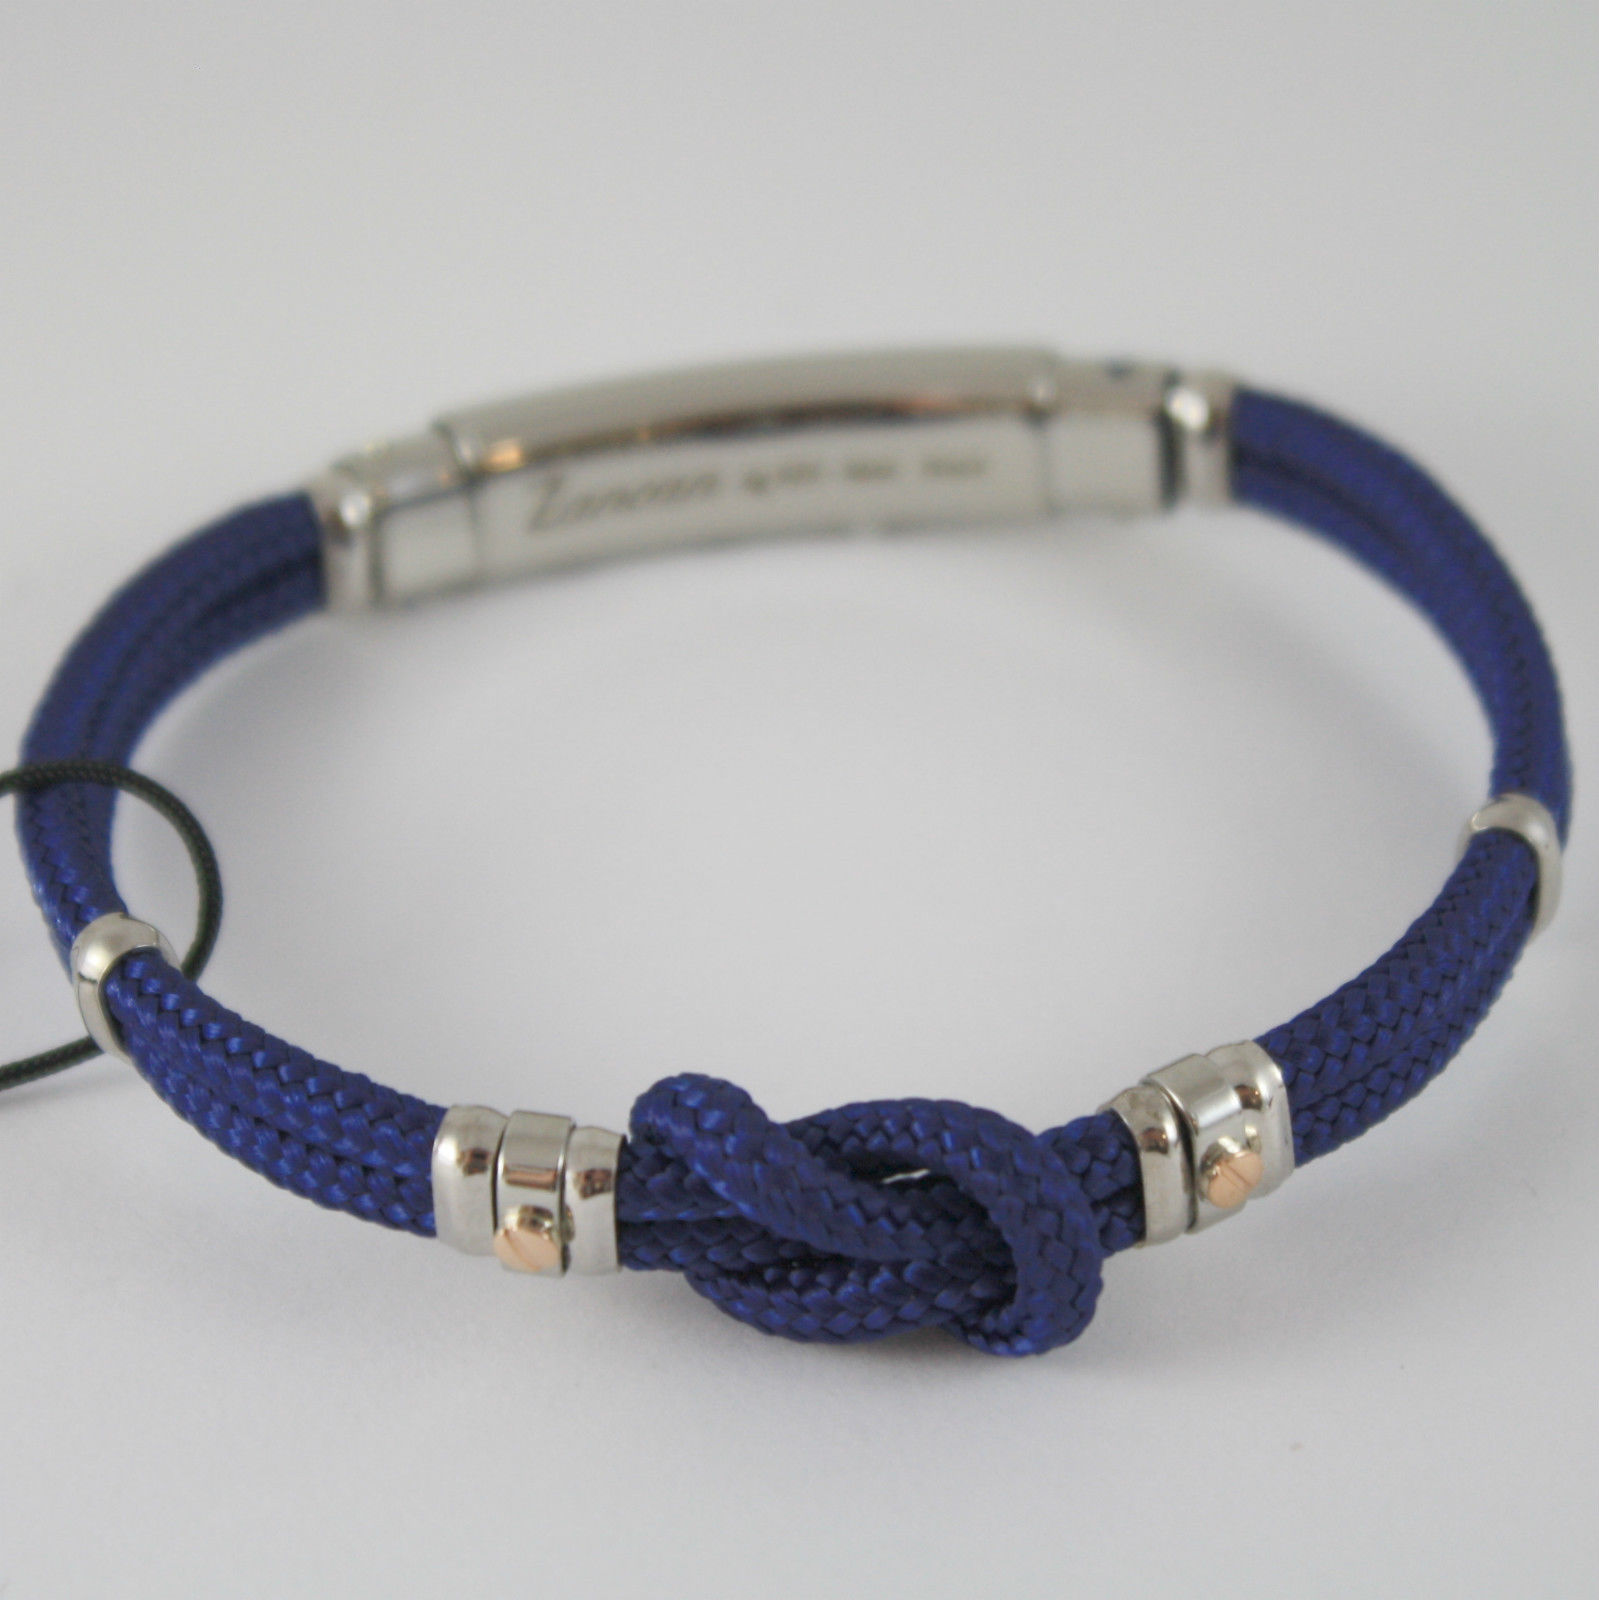 18K ROSE GOLD & SILVER BRACELET NAUTICAL BLUE SAILOR KNOT, ZANCAN MADE IN ITALY